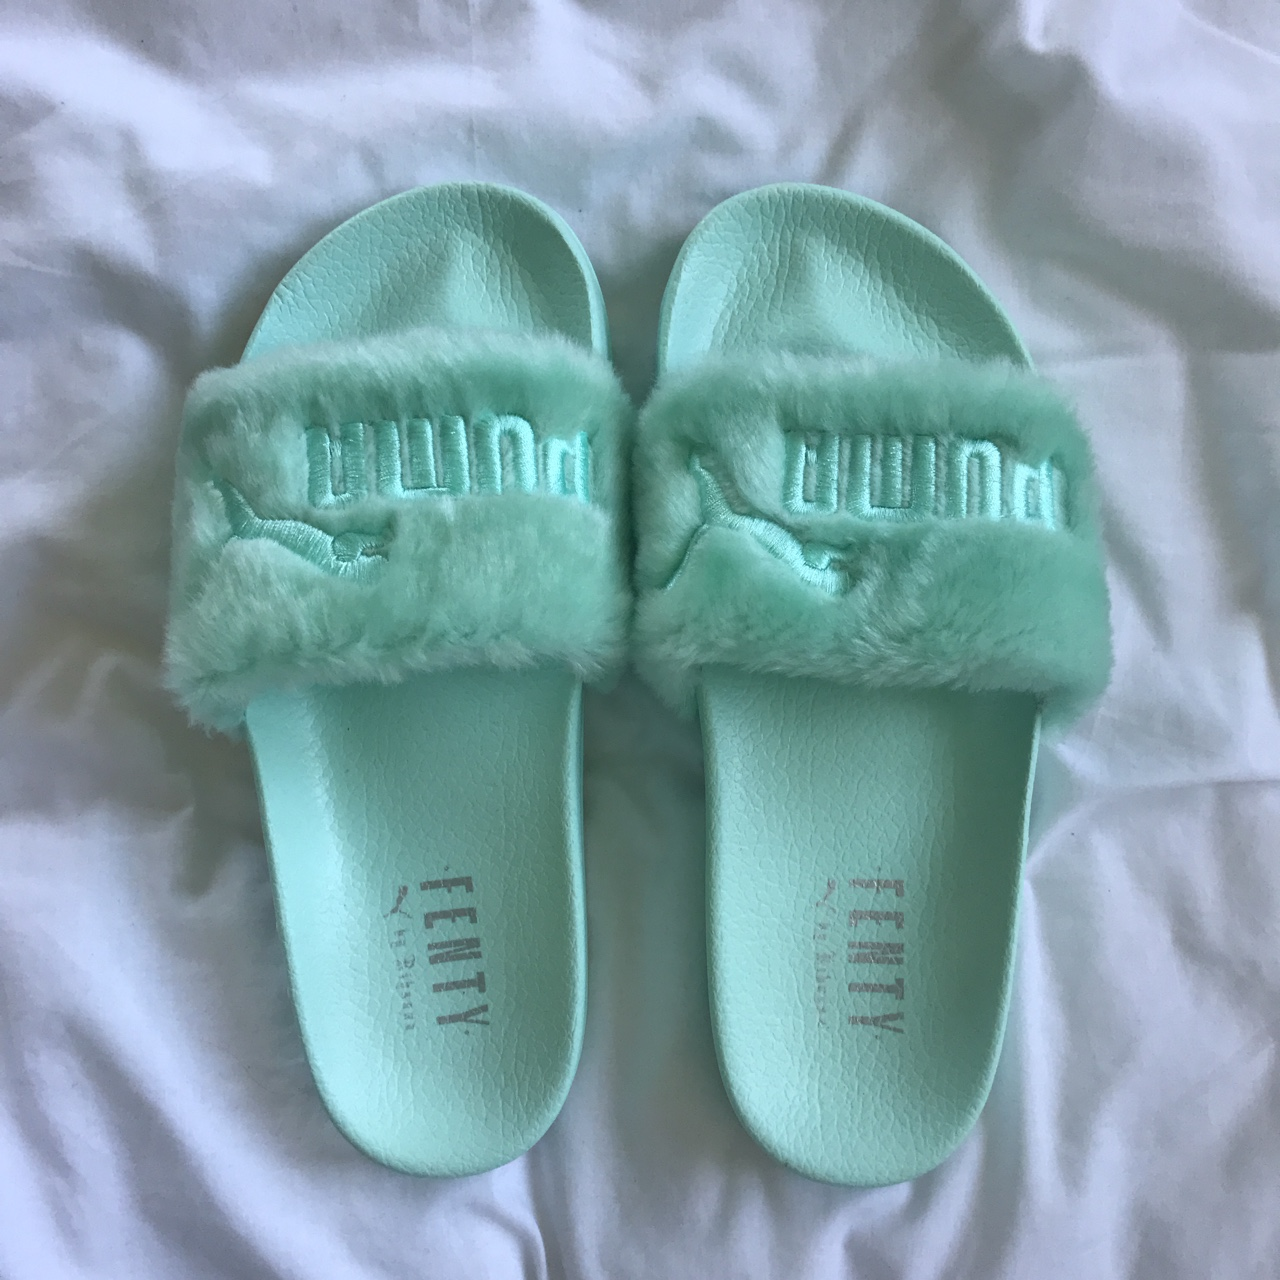 newest d51f8 daa12 NEVER WORN IN BOX Mint green PUMA Fenty slides - Depop